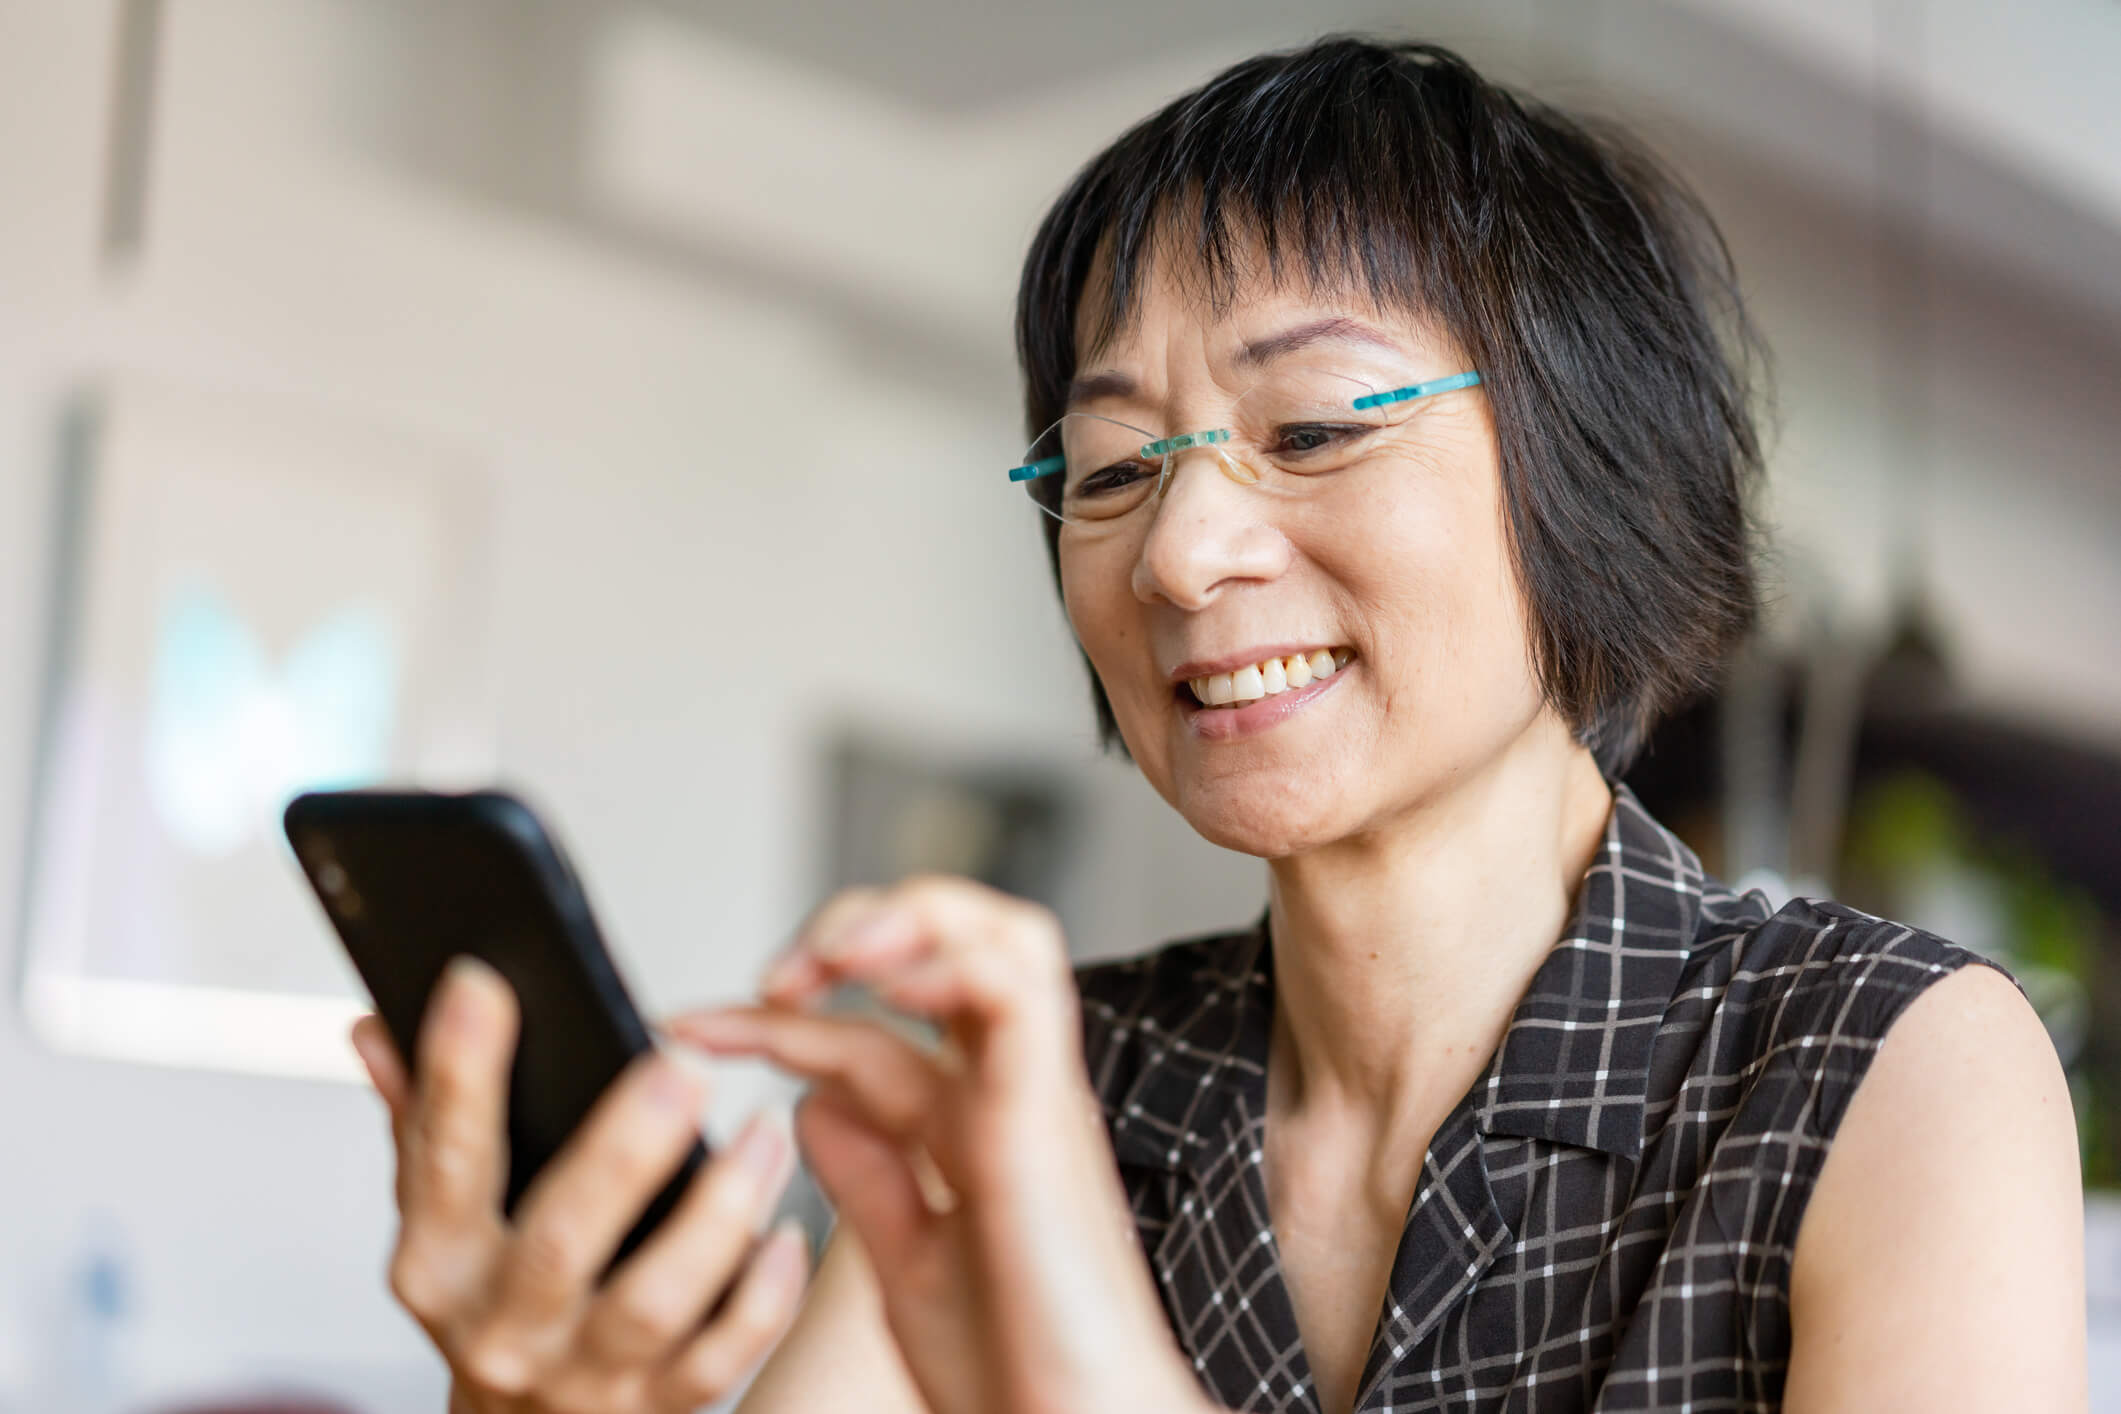 Senior age asian woman looks at a cell phone.